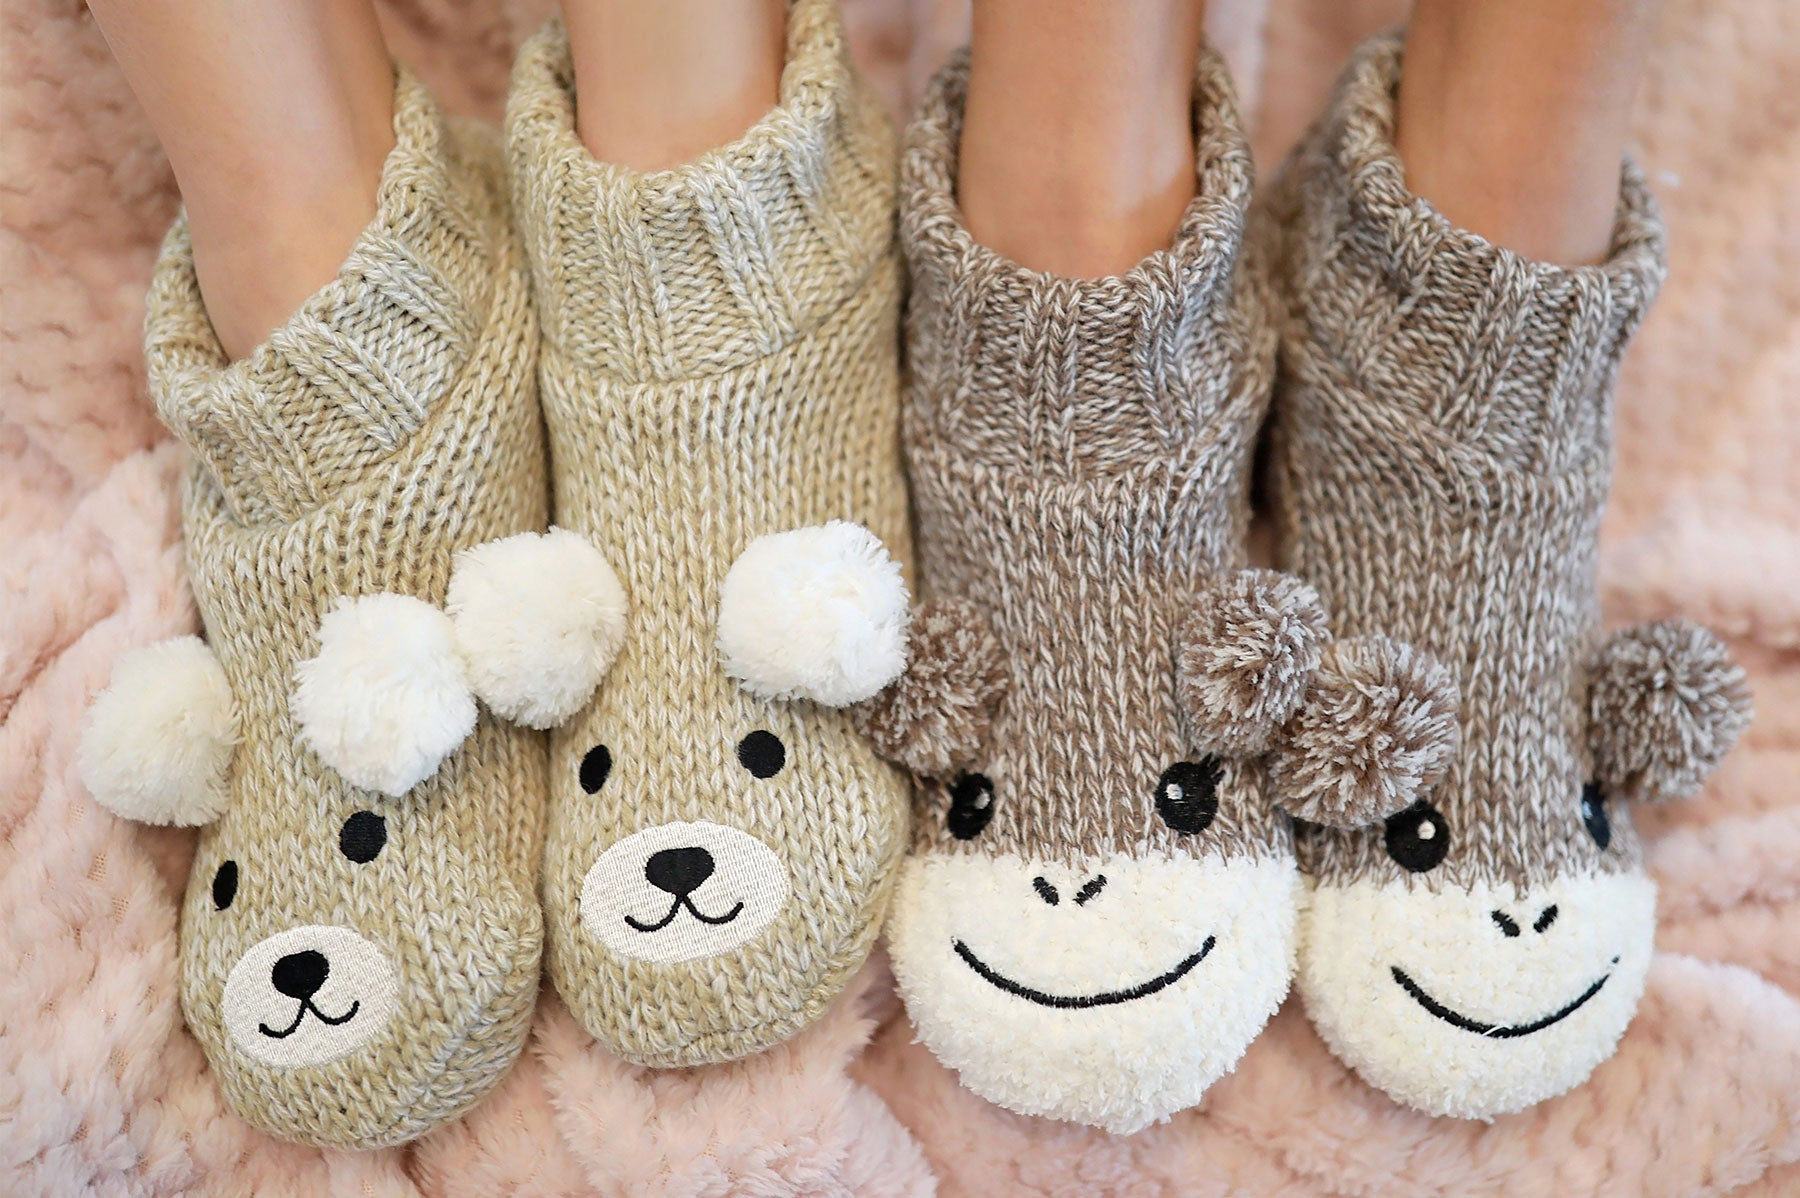 Why Wear Slippers at Home? Image of Fuzzy Babba Critter Slippers and Slipper Socks